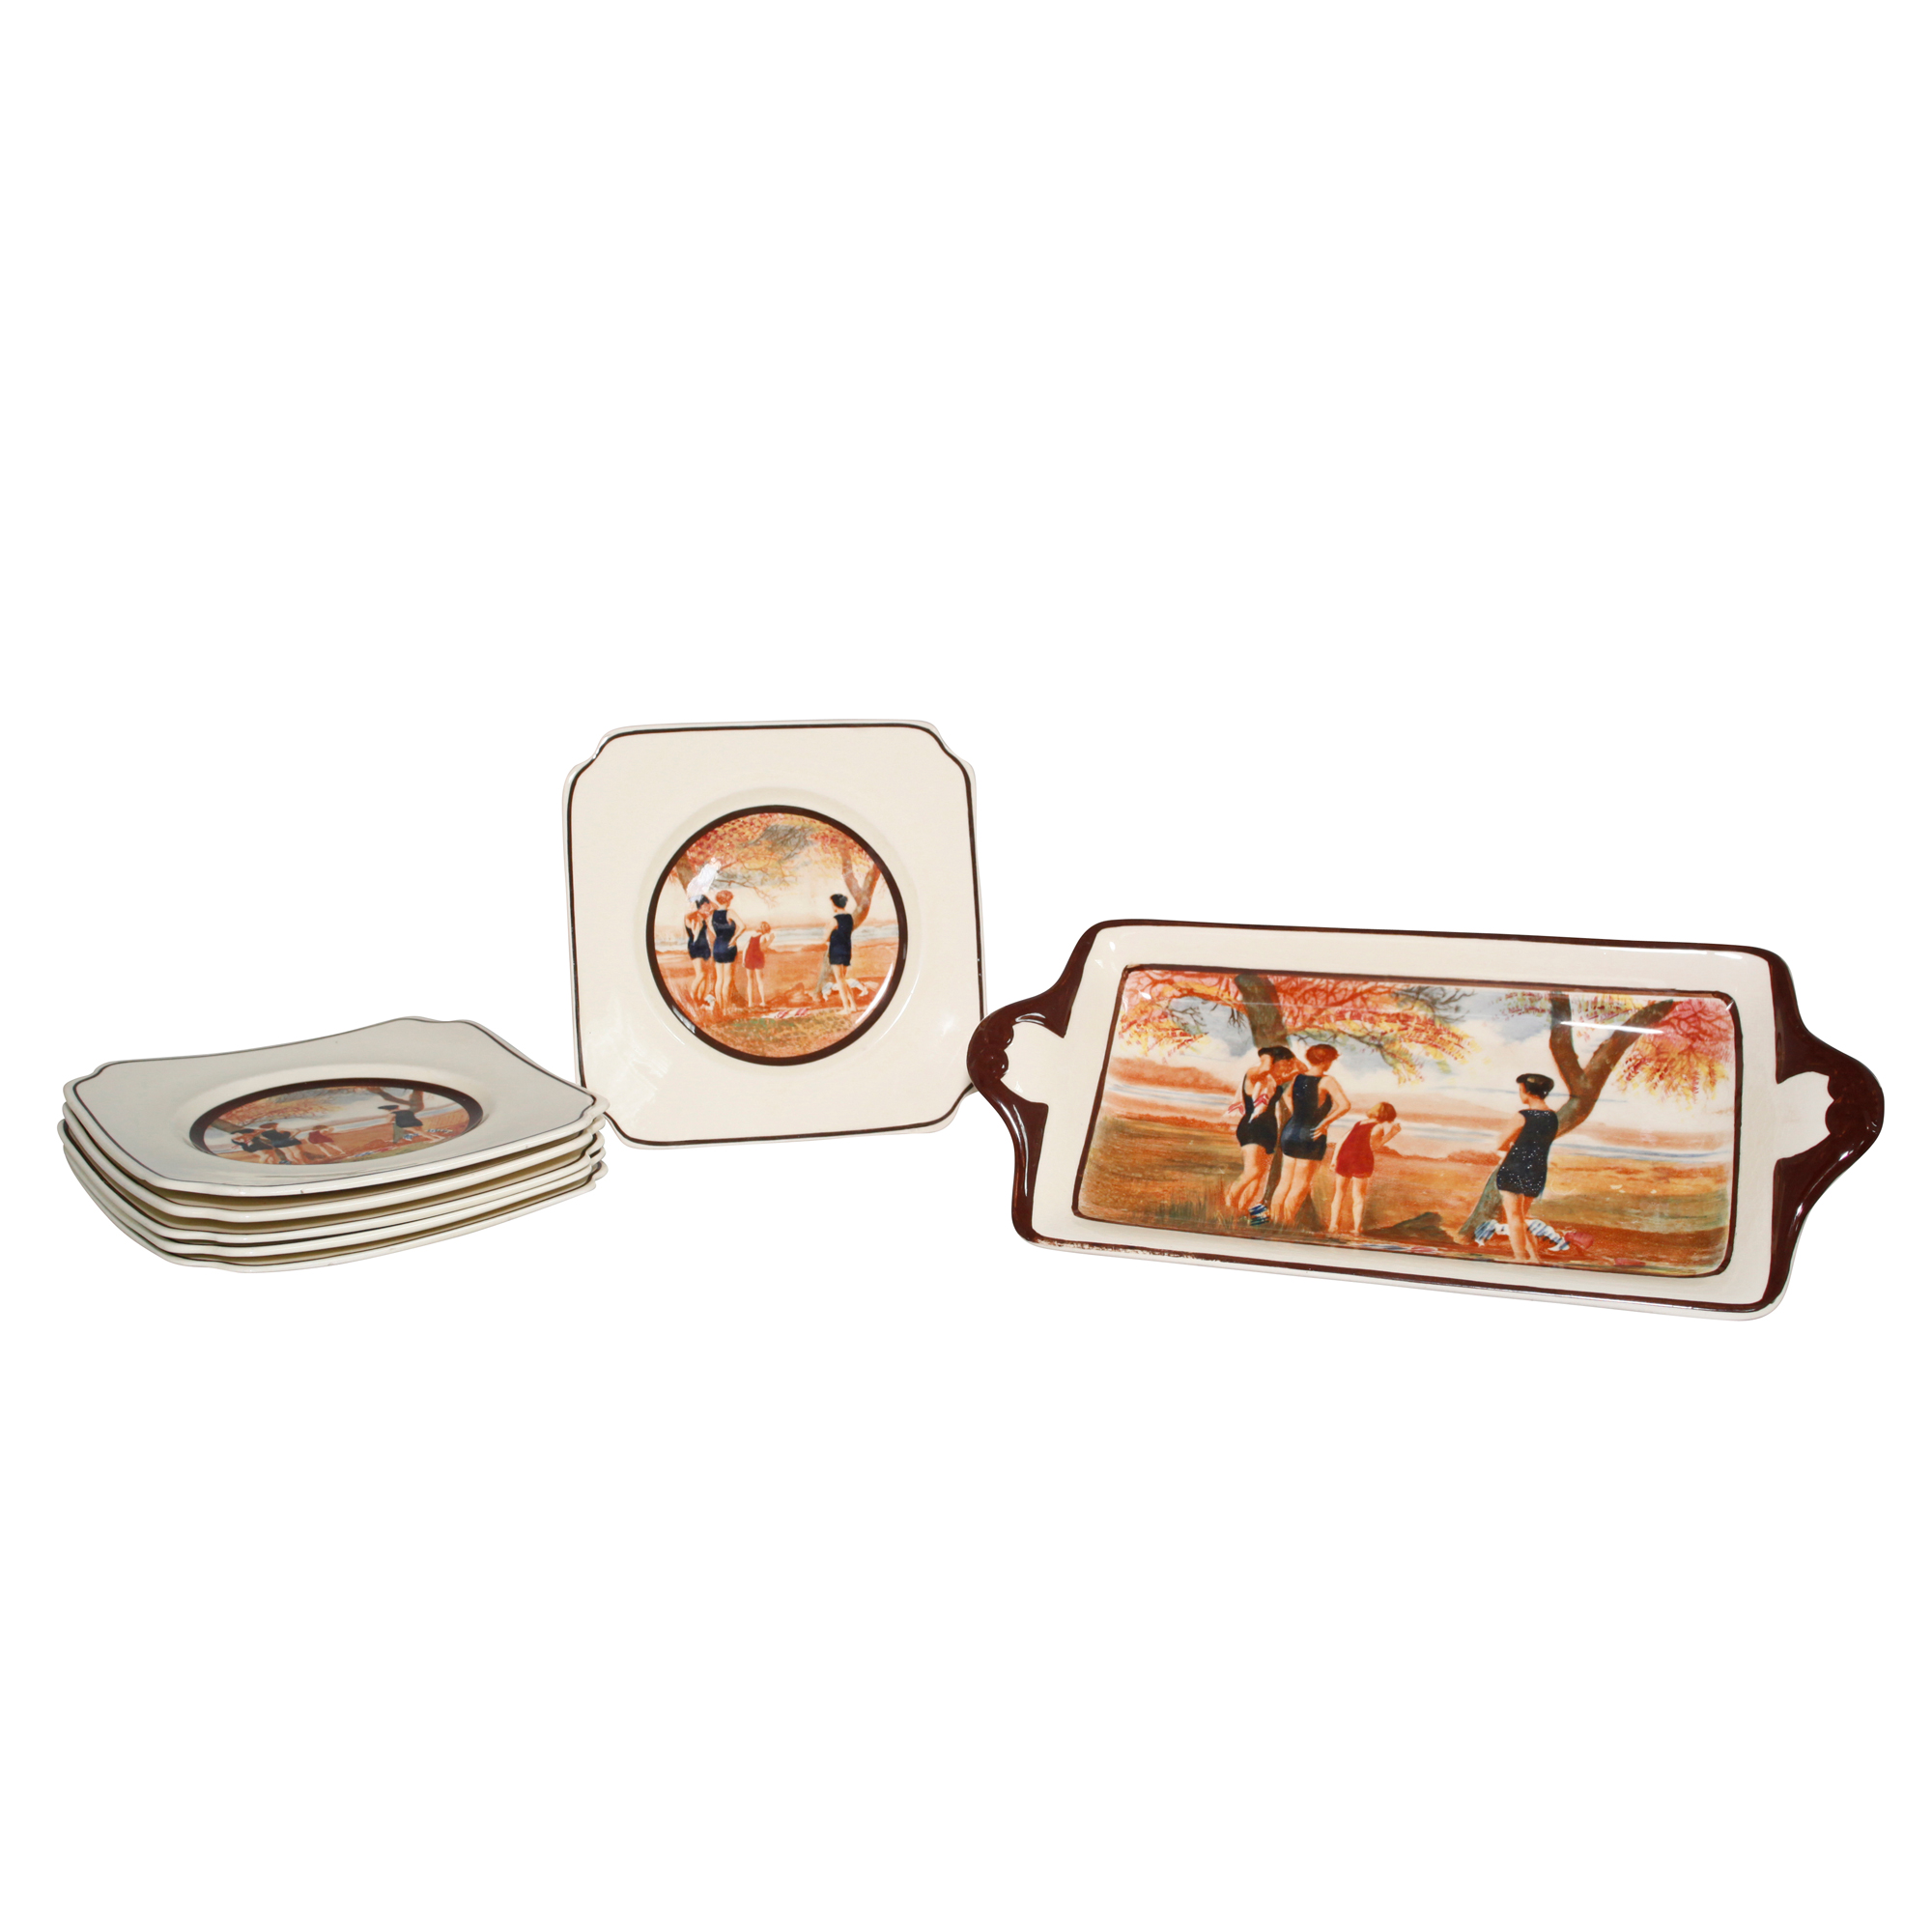 """Seriesware """"Surfing"""" 7pc. Sandwich Set - Scene of bathers at the waterside (Set includes one tray and six small plates) - Royal Doulton Seriesware"""